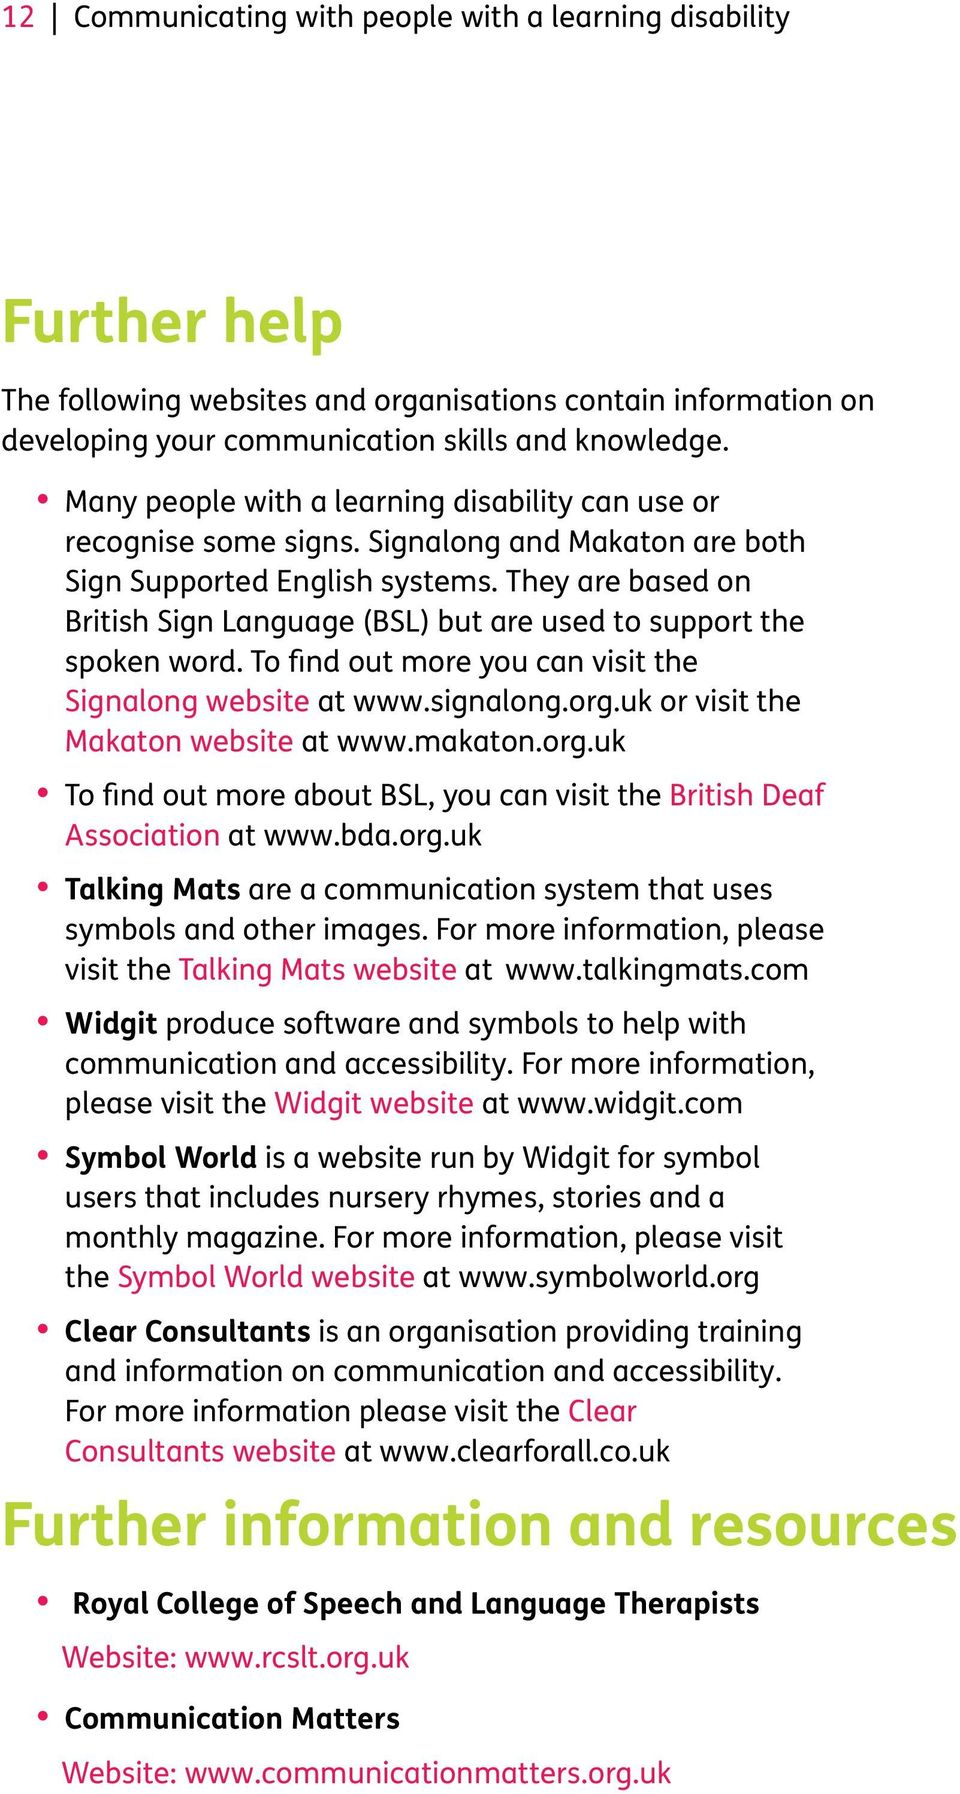 They are based on British Sign Language (BSL) but are used to support the spoken word. To find out more you can visit the Signalong website at www.signalong.org.uk or visit the Makaton website at www.